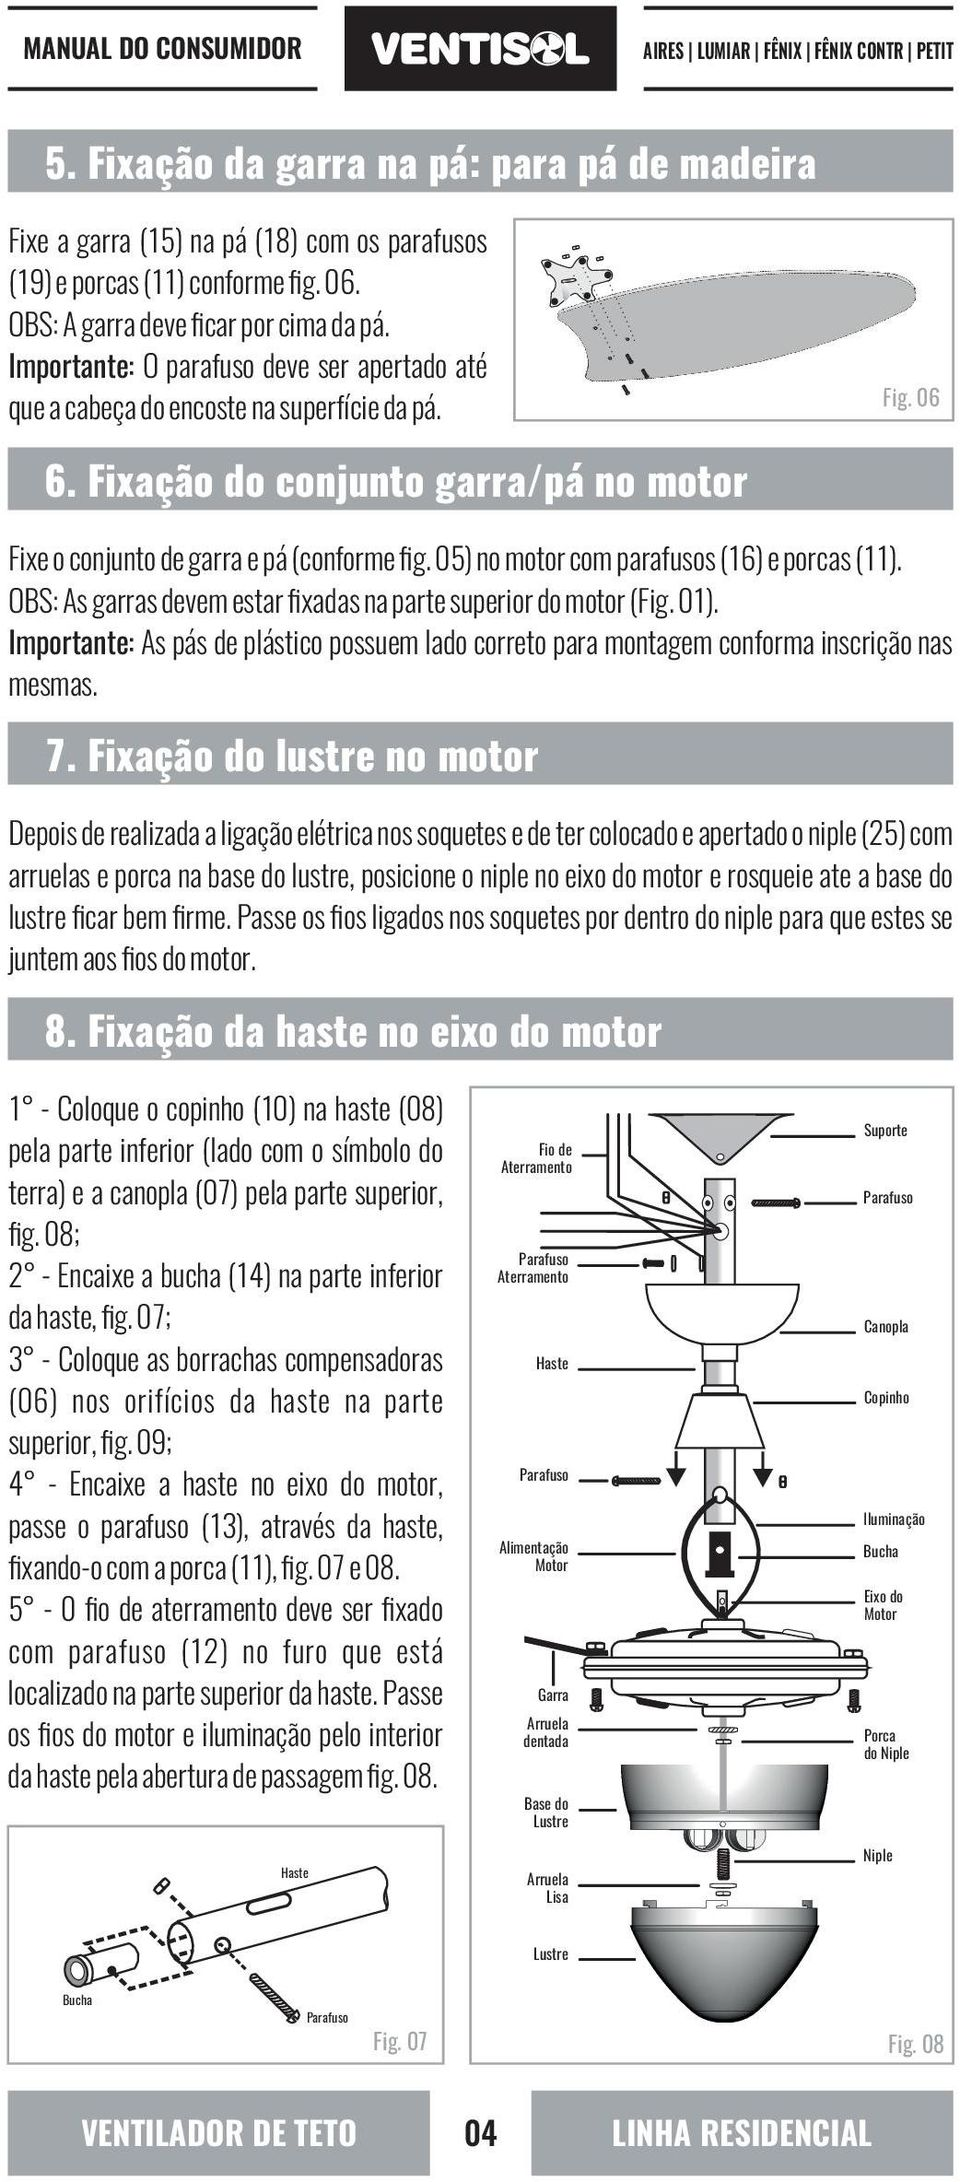 05) no motor com parafusos (16) e porcas (11). OBS: As garras devem estar fixadas na parte superior do motor (Fig. 01).